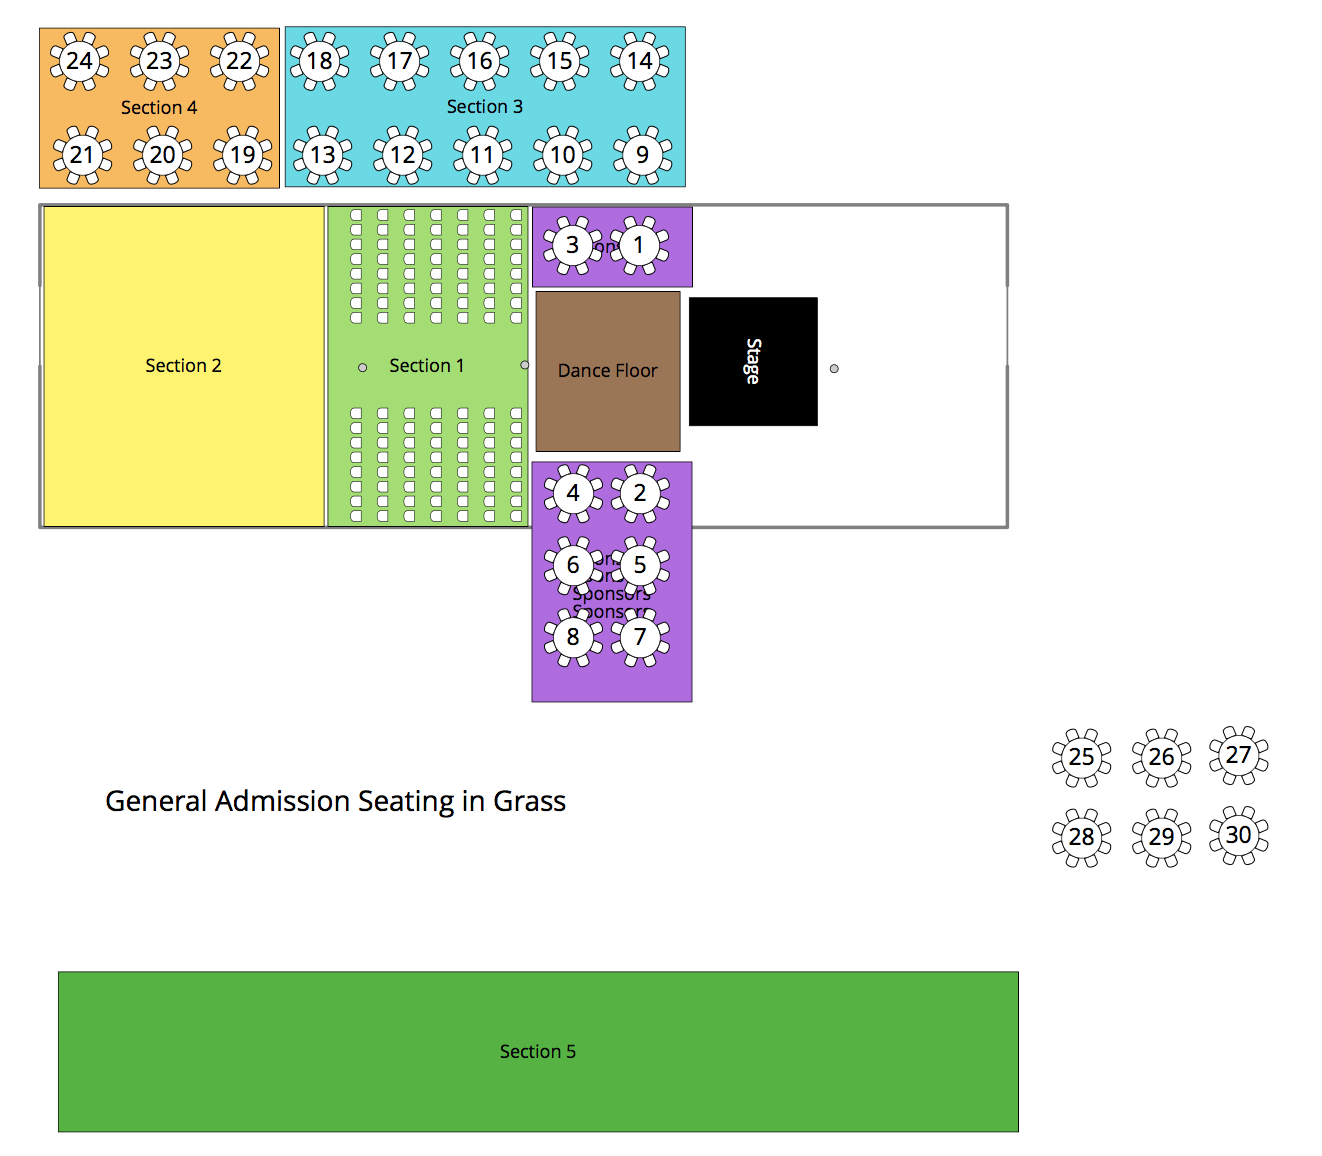 Seating by section